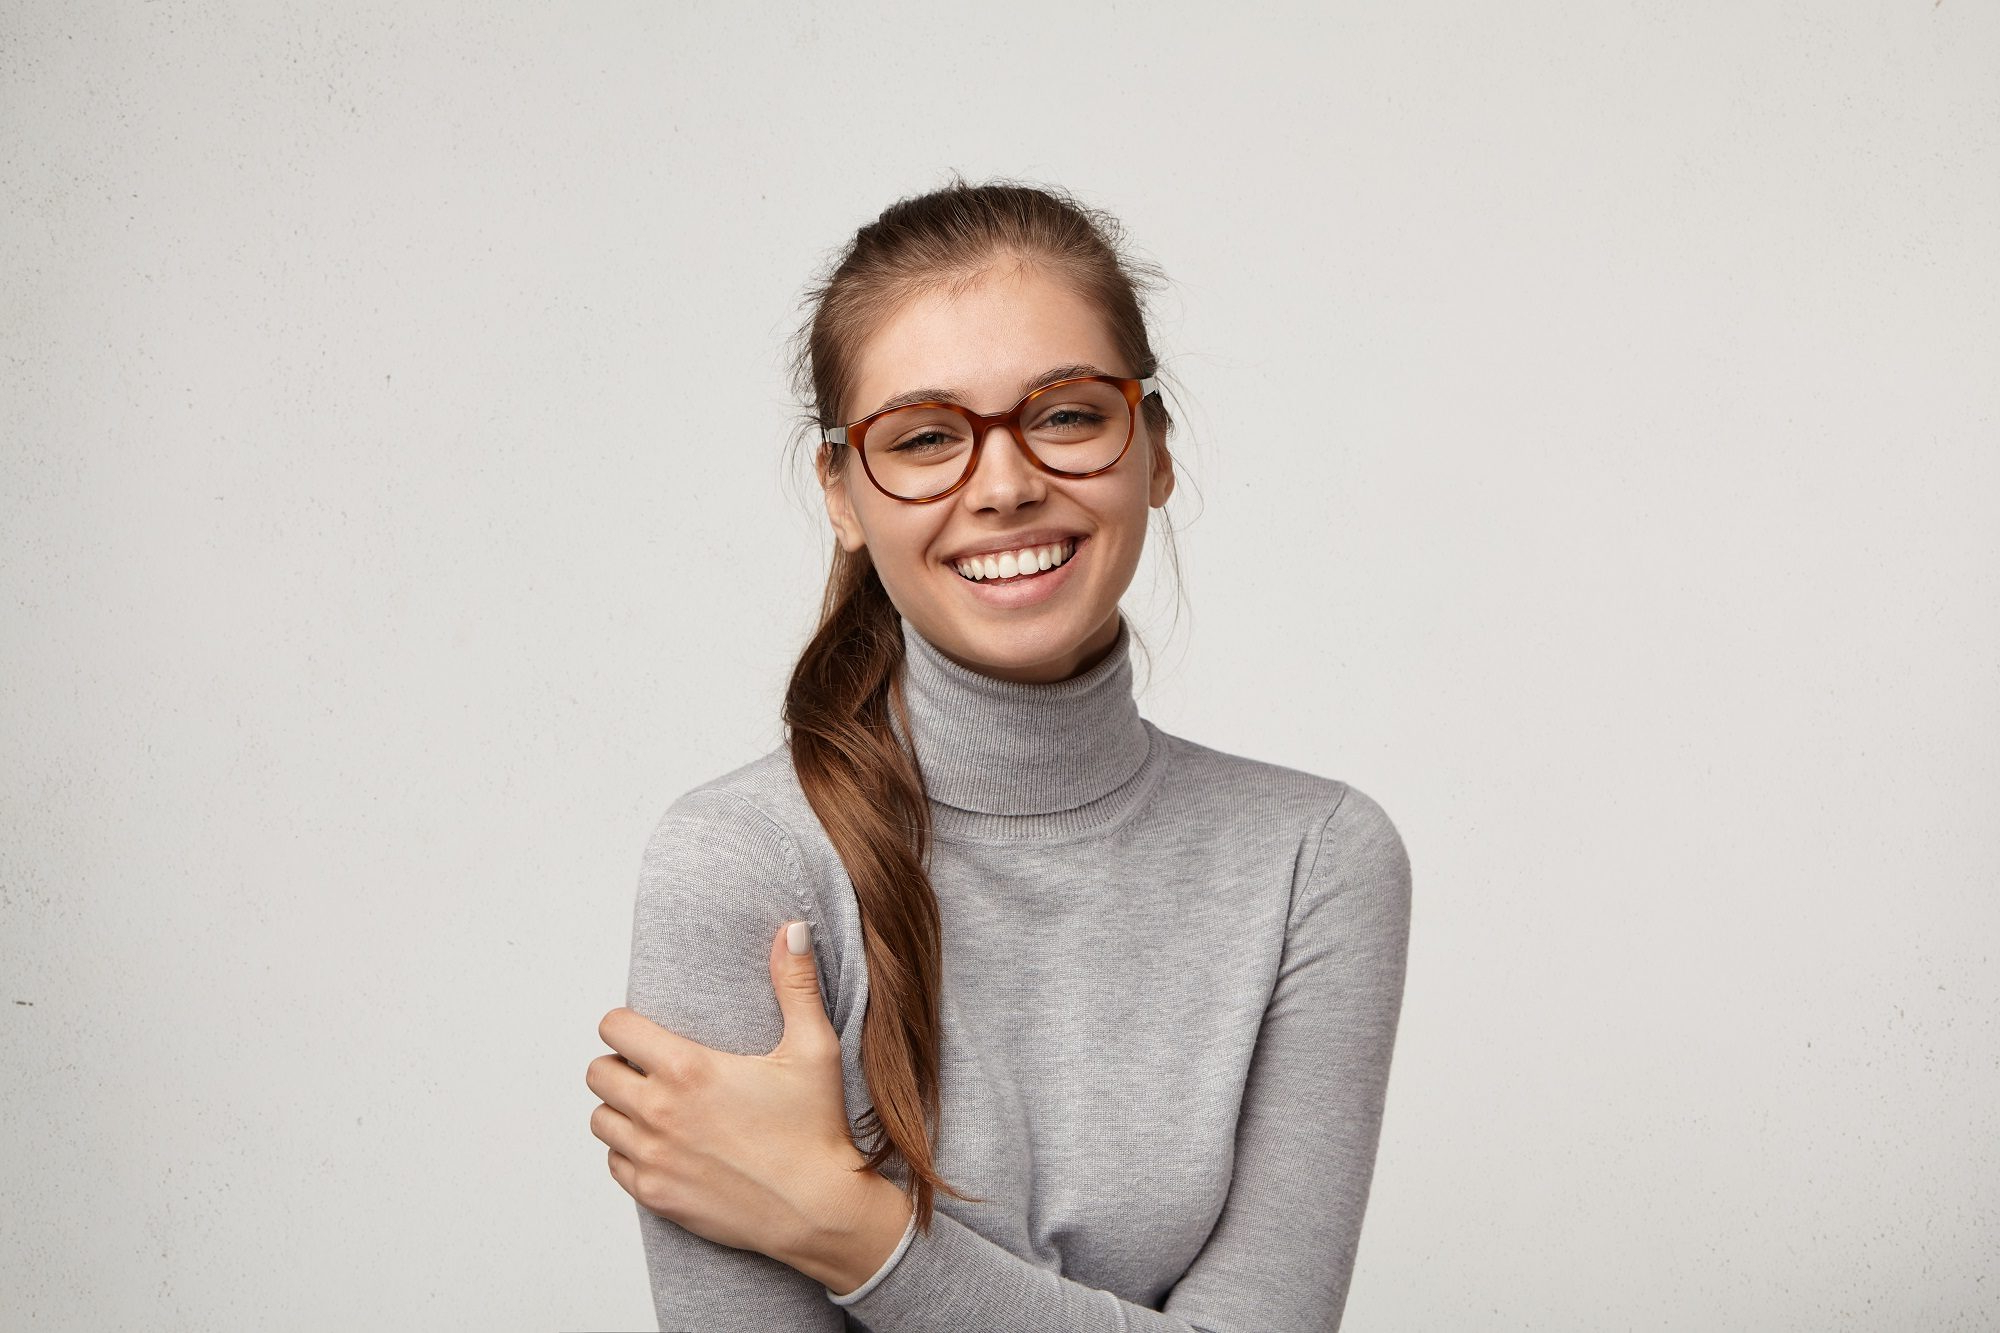 Bespectacled Beauty: 5 Best Hairstyles For Glasses Wearers   All Regarding Short Haircuts For Glasses Wearer (View 17 of 25)